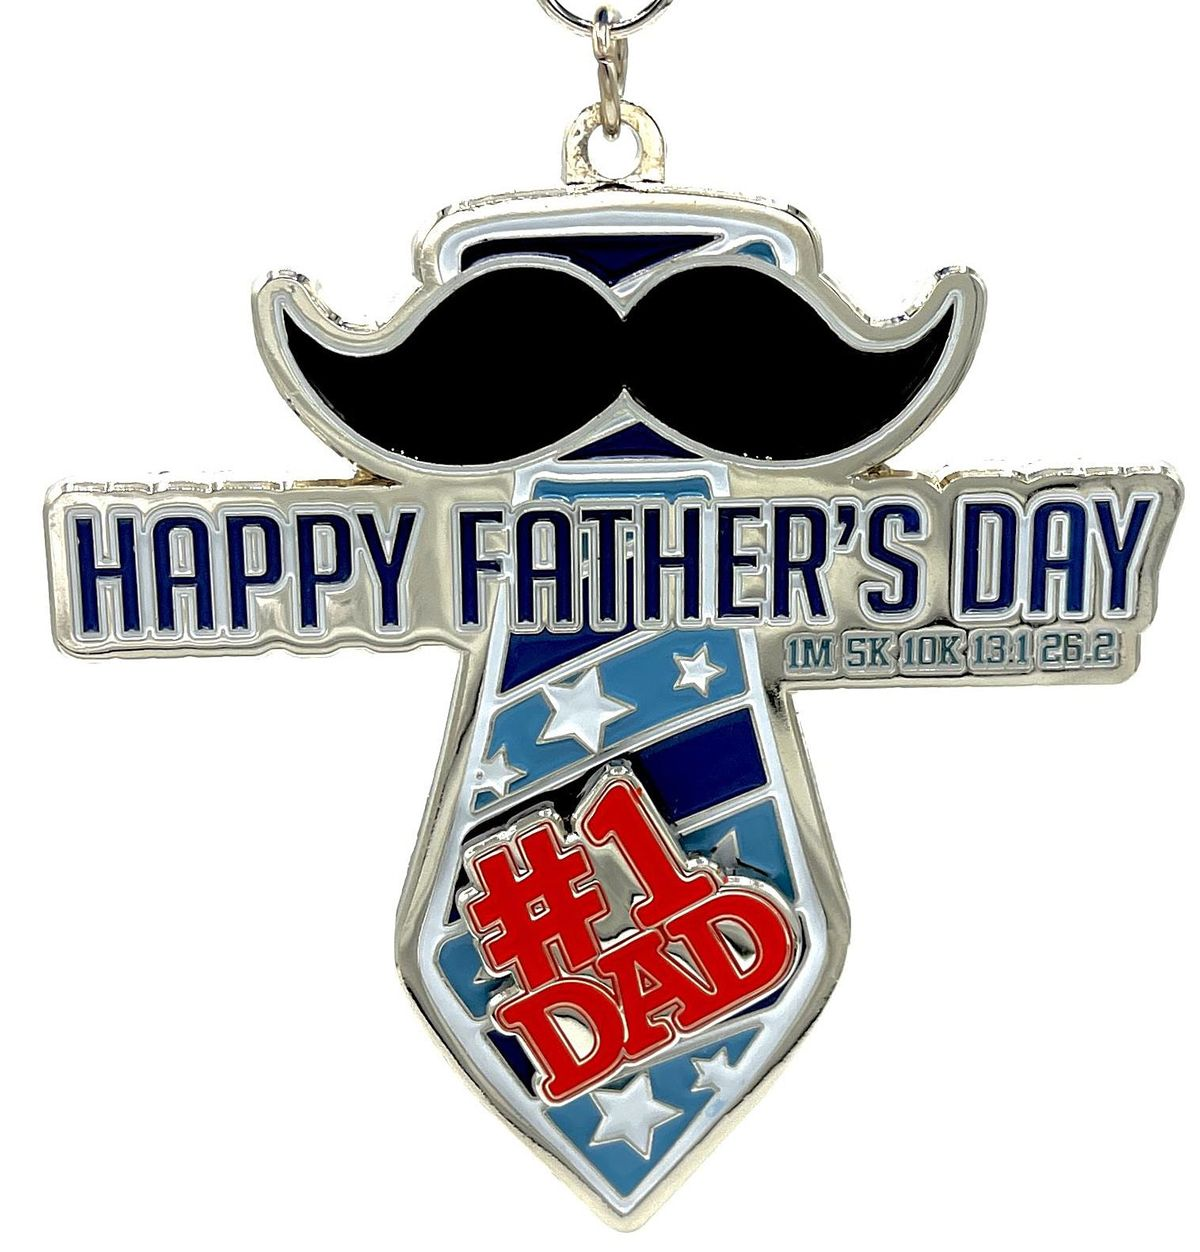 Father's Day 1M 5K 10K 13.1 26.2-Participate from Home. Save $10! | Event in Los Angeles | AllEvents.in